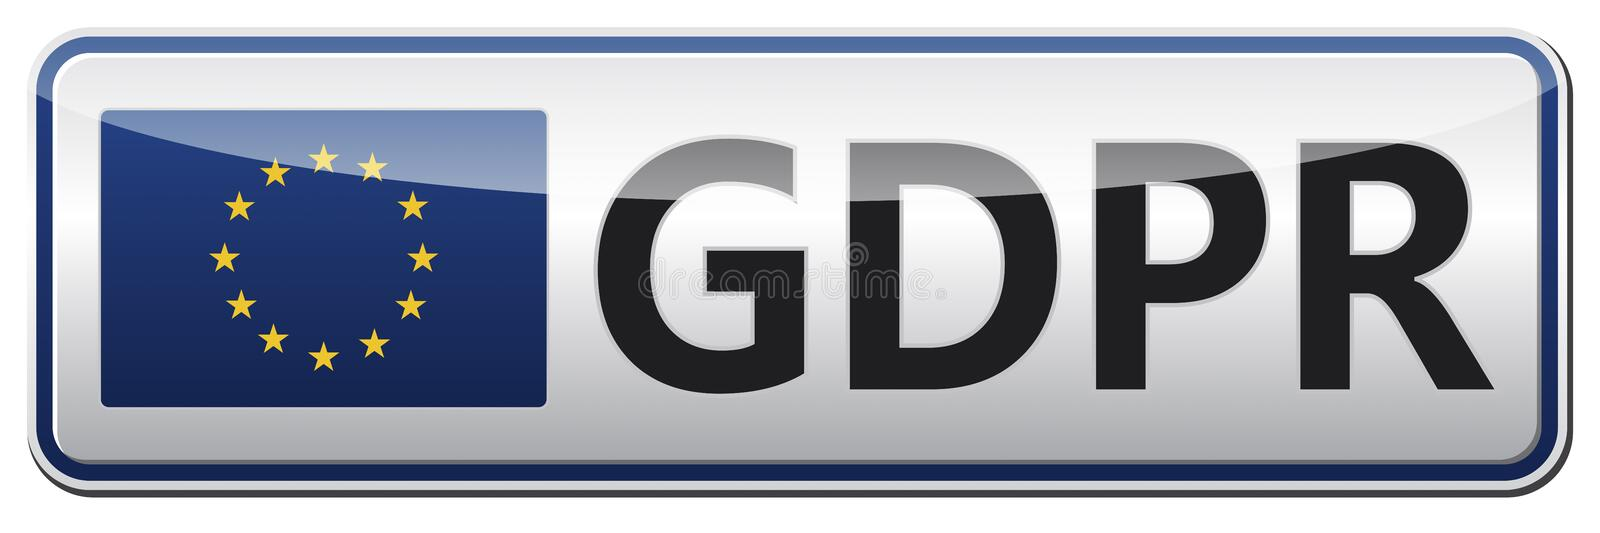 GDPR - General Data Protection Regulation. Glossy banner with EU royalty free stock image